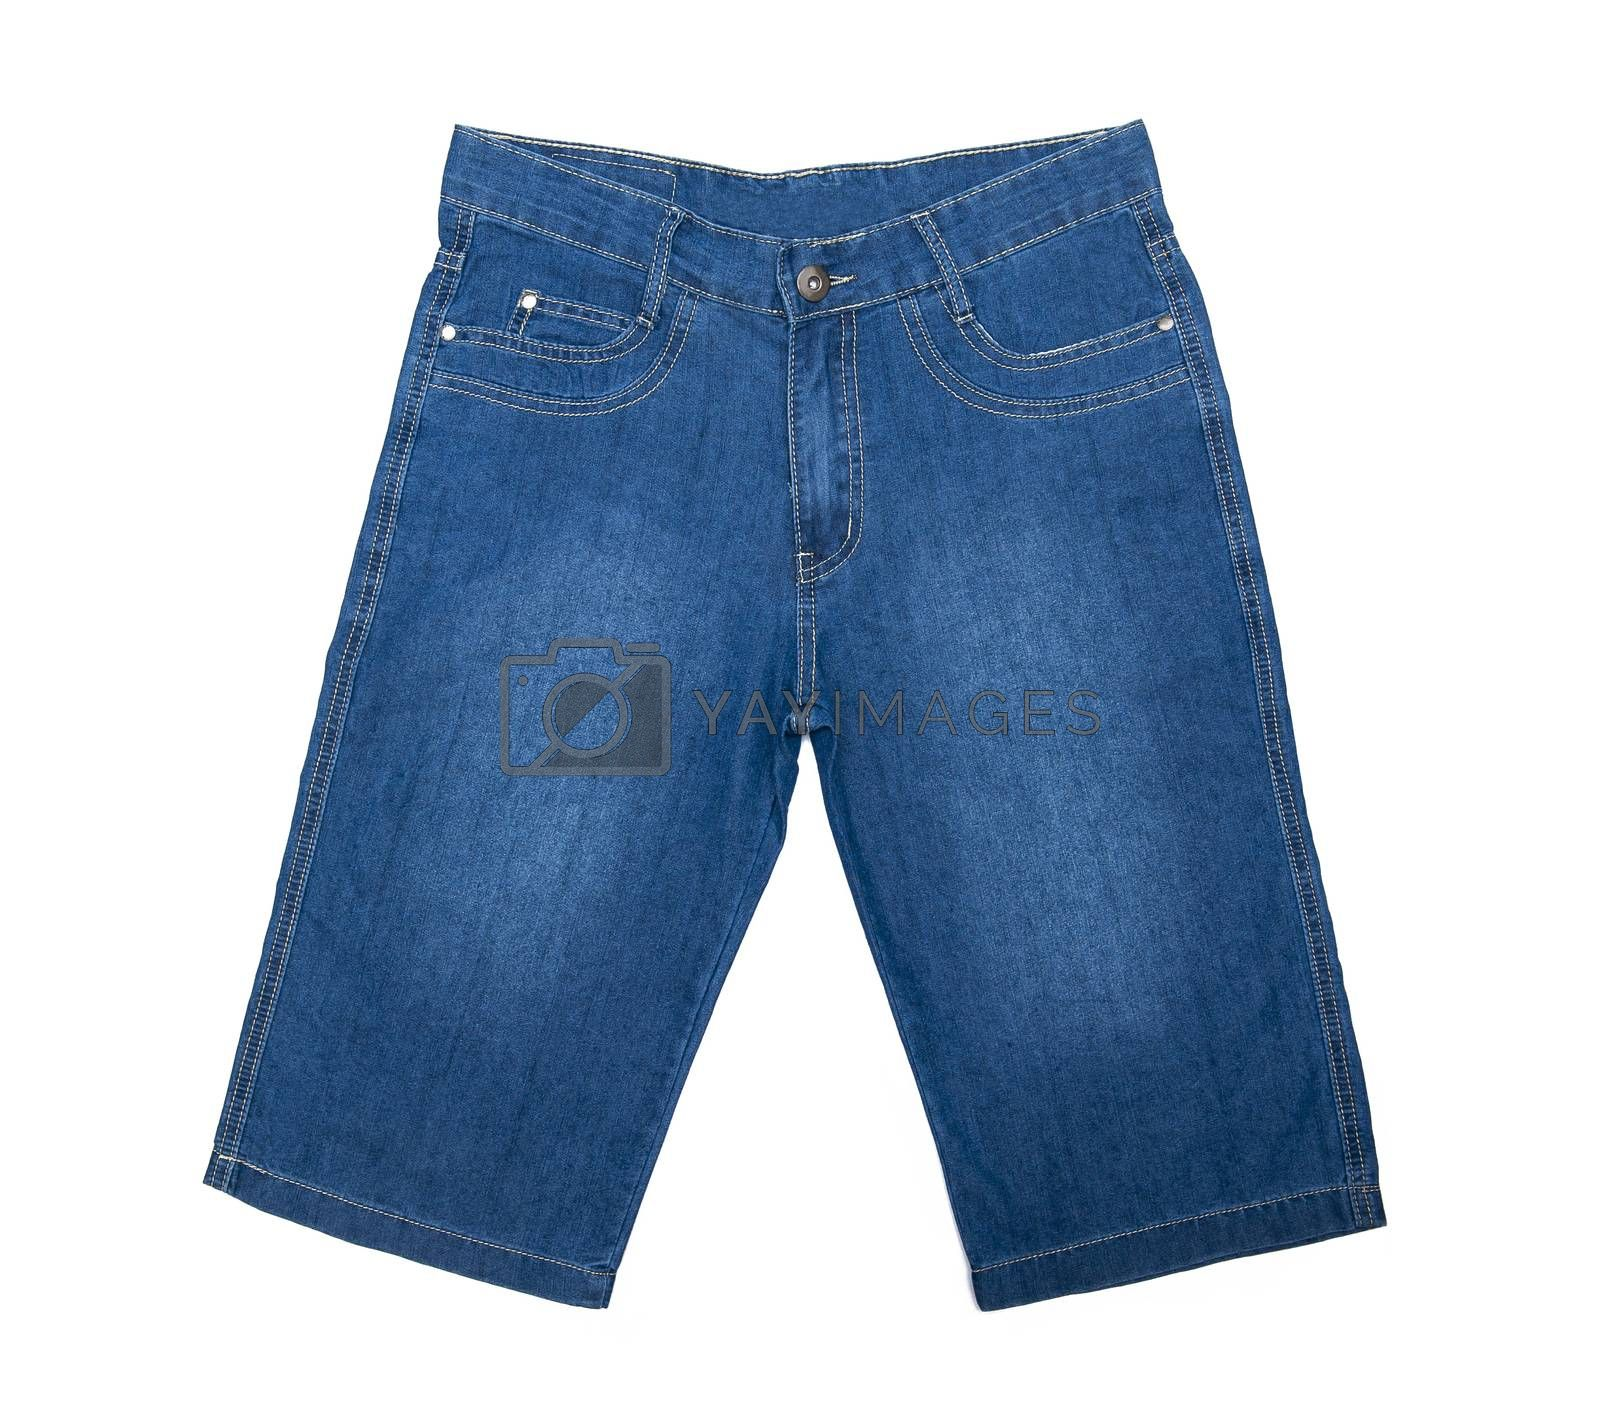 Jeans shorts isolated on the white background